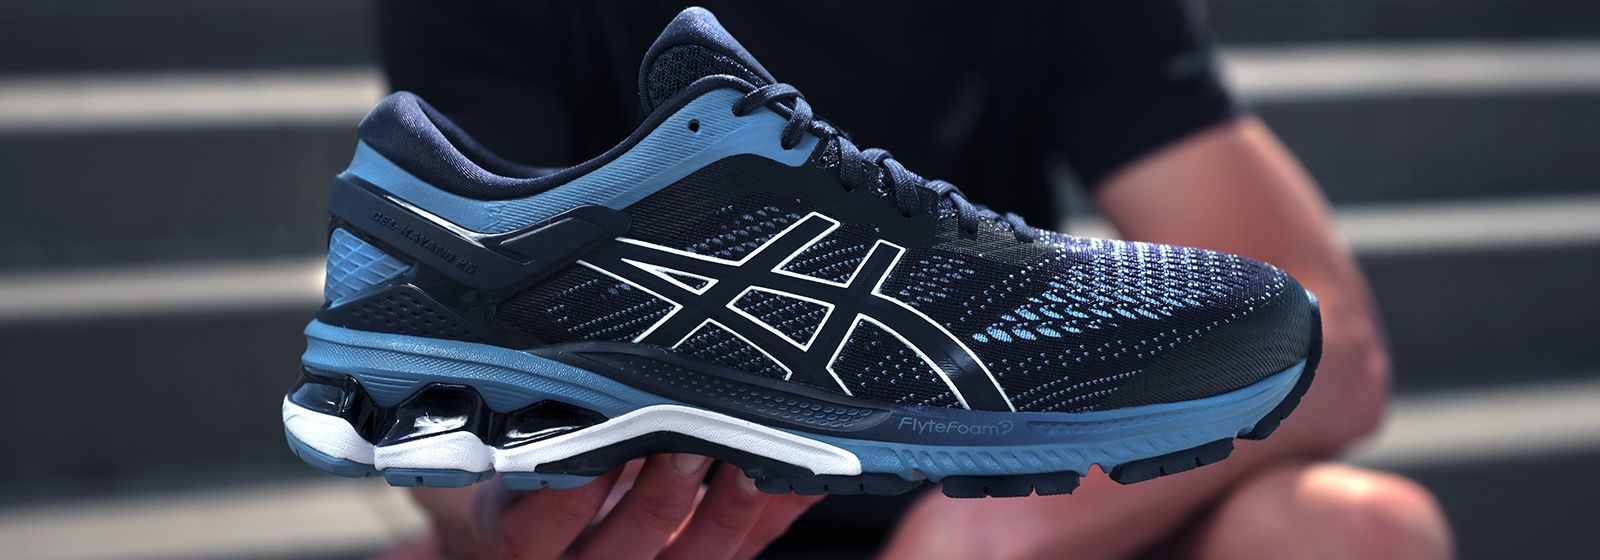 The Making of a Legend: GEL KAYANO™ 26